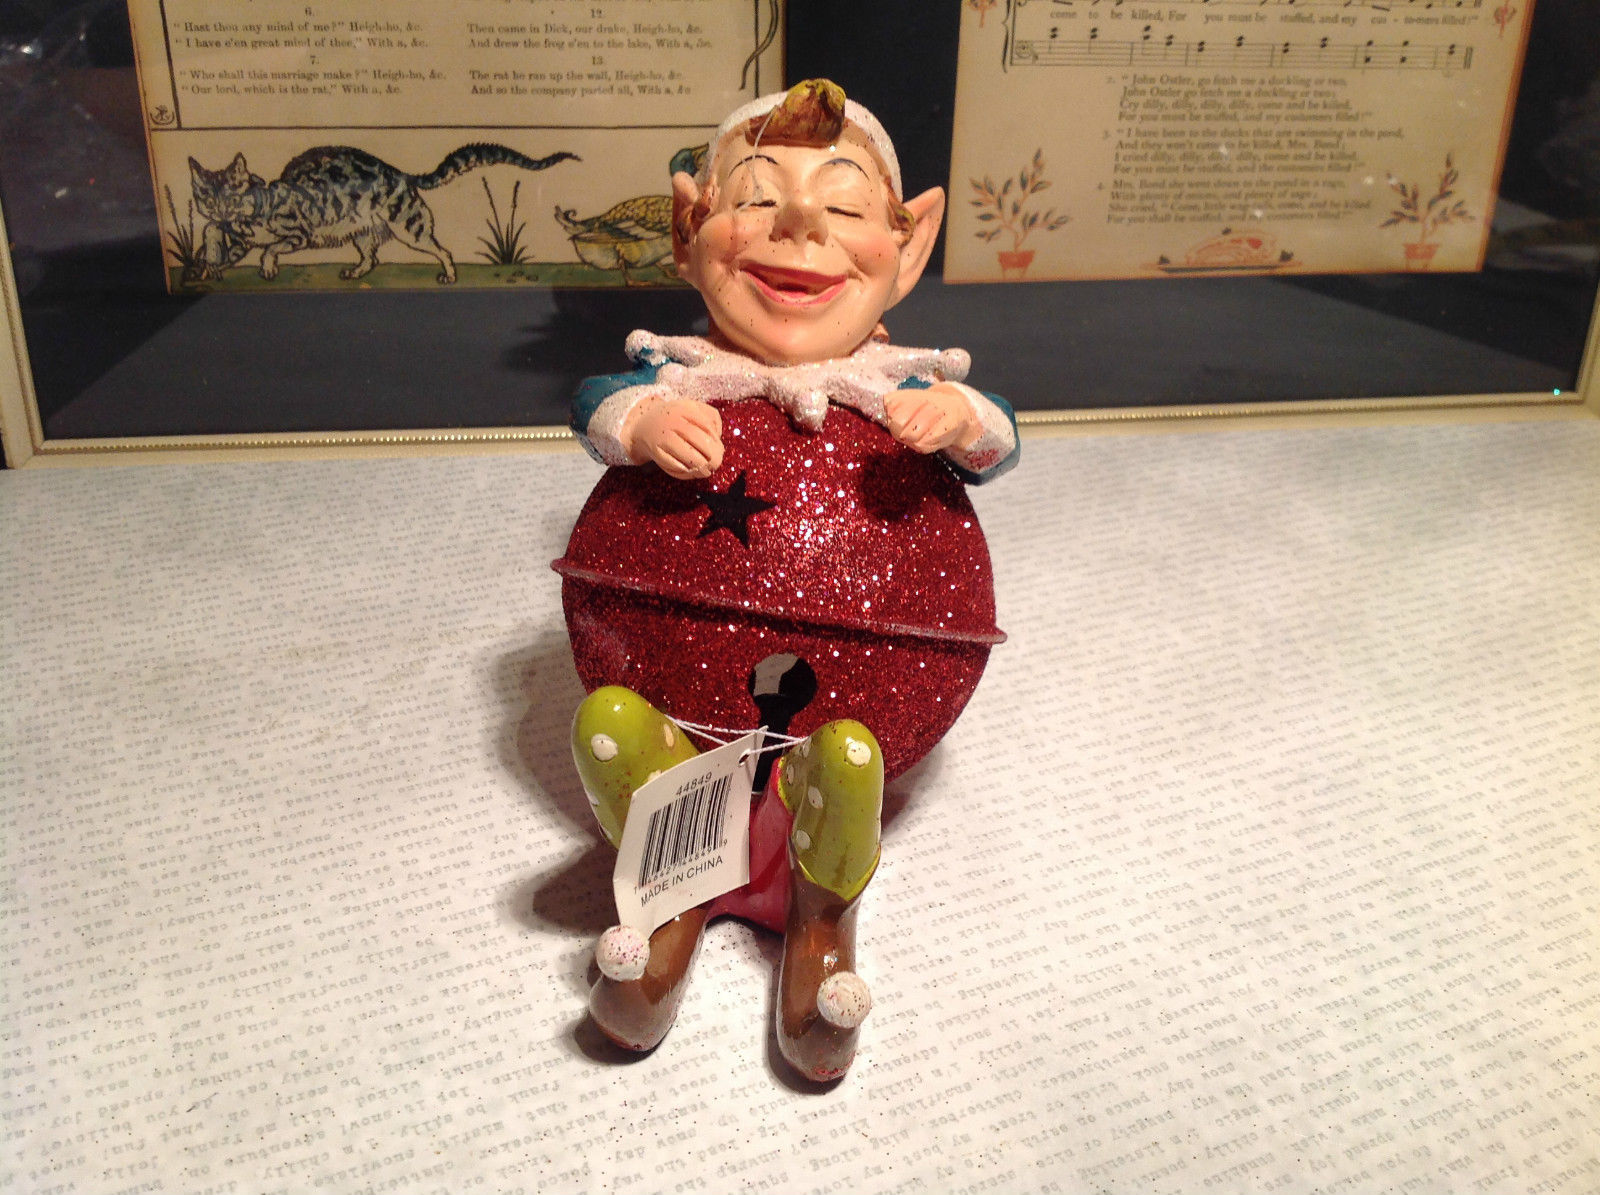 Sitting Smiling Metal and Resin Ornament Figurine Glitter Orb Height 5 Inches